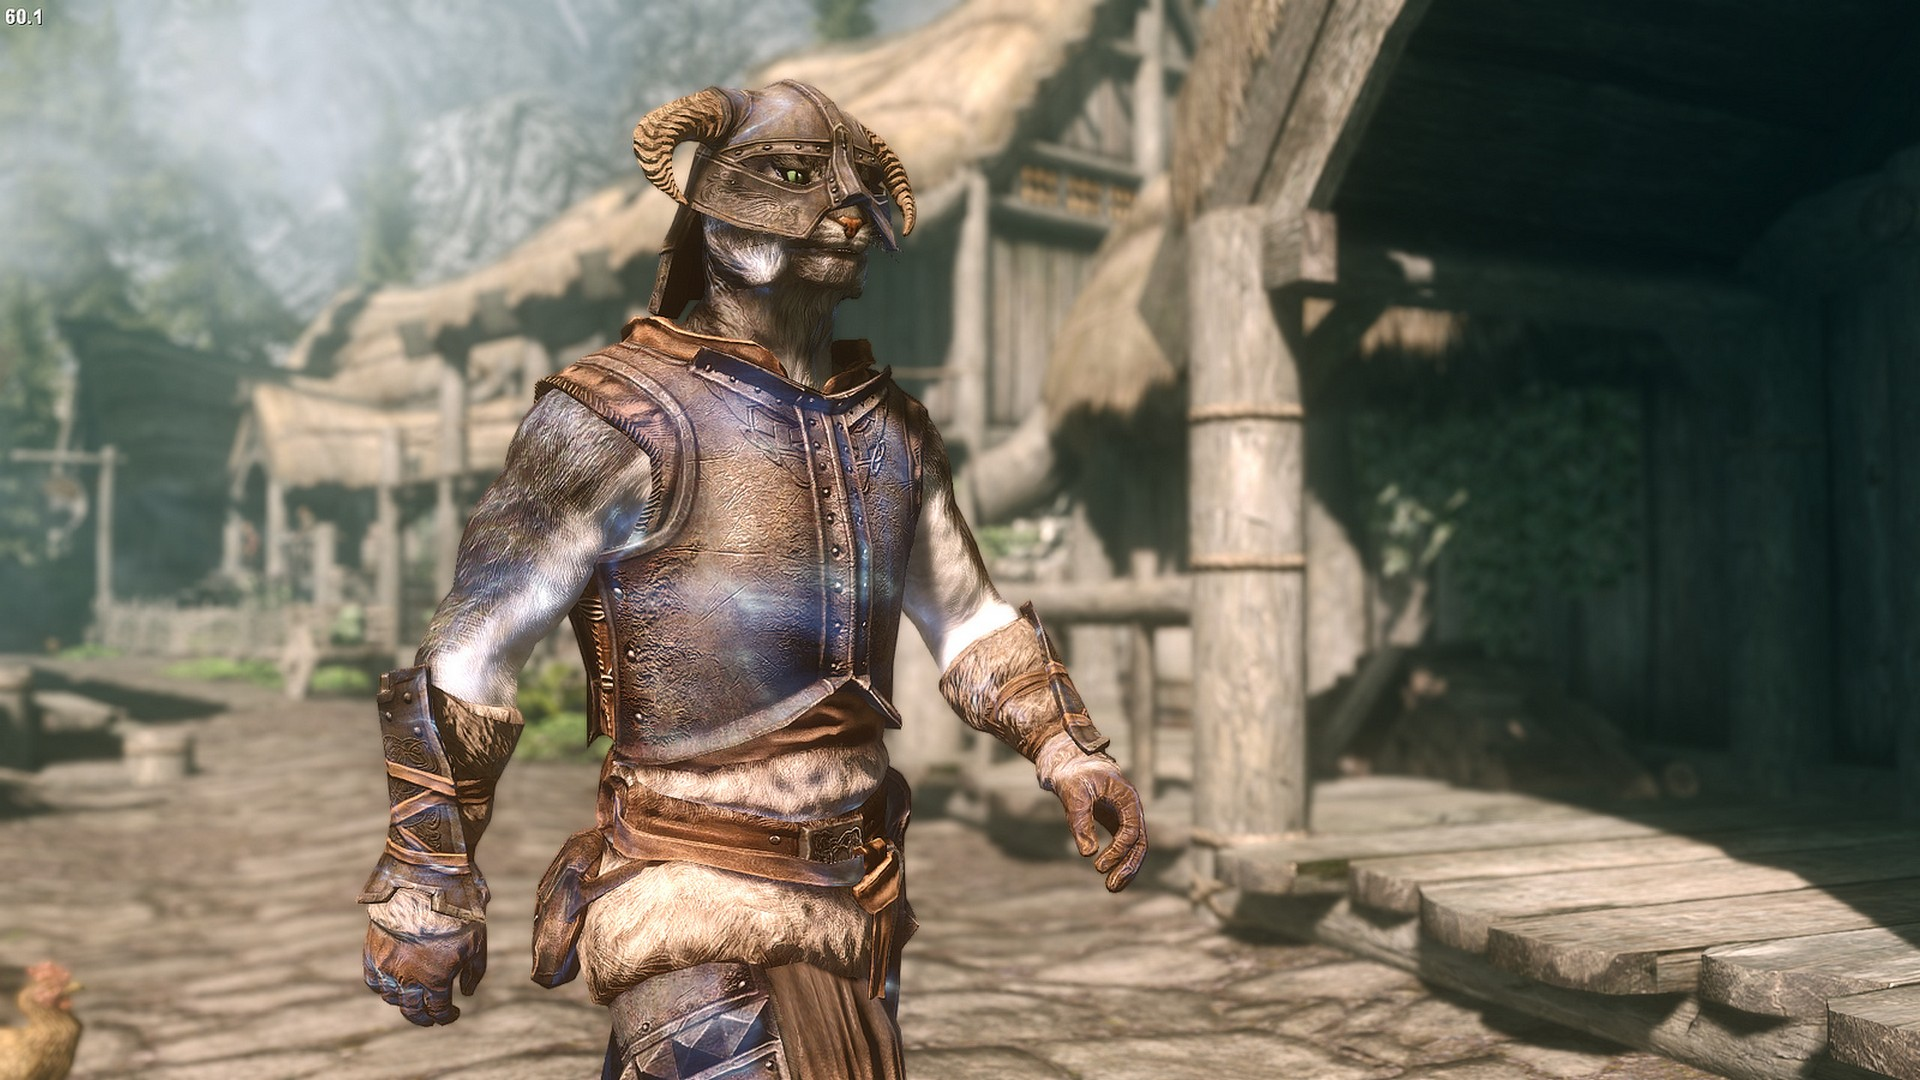 New Skyrim Mod Puts Ryse Battlefield 4 And Other Next Gen Game GraphicsVisuals To Shame